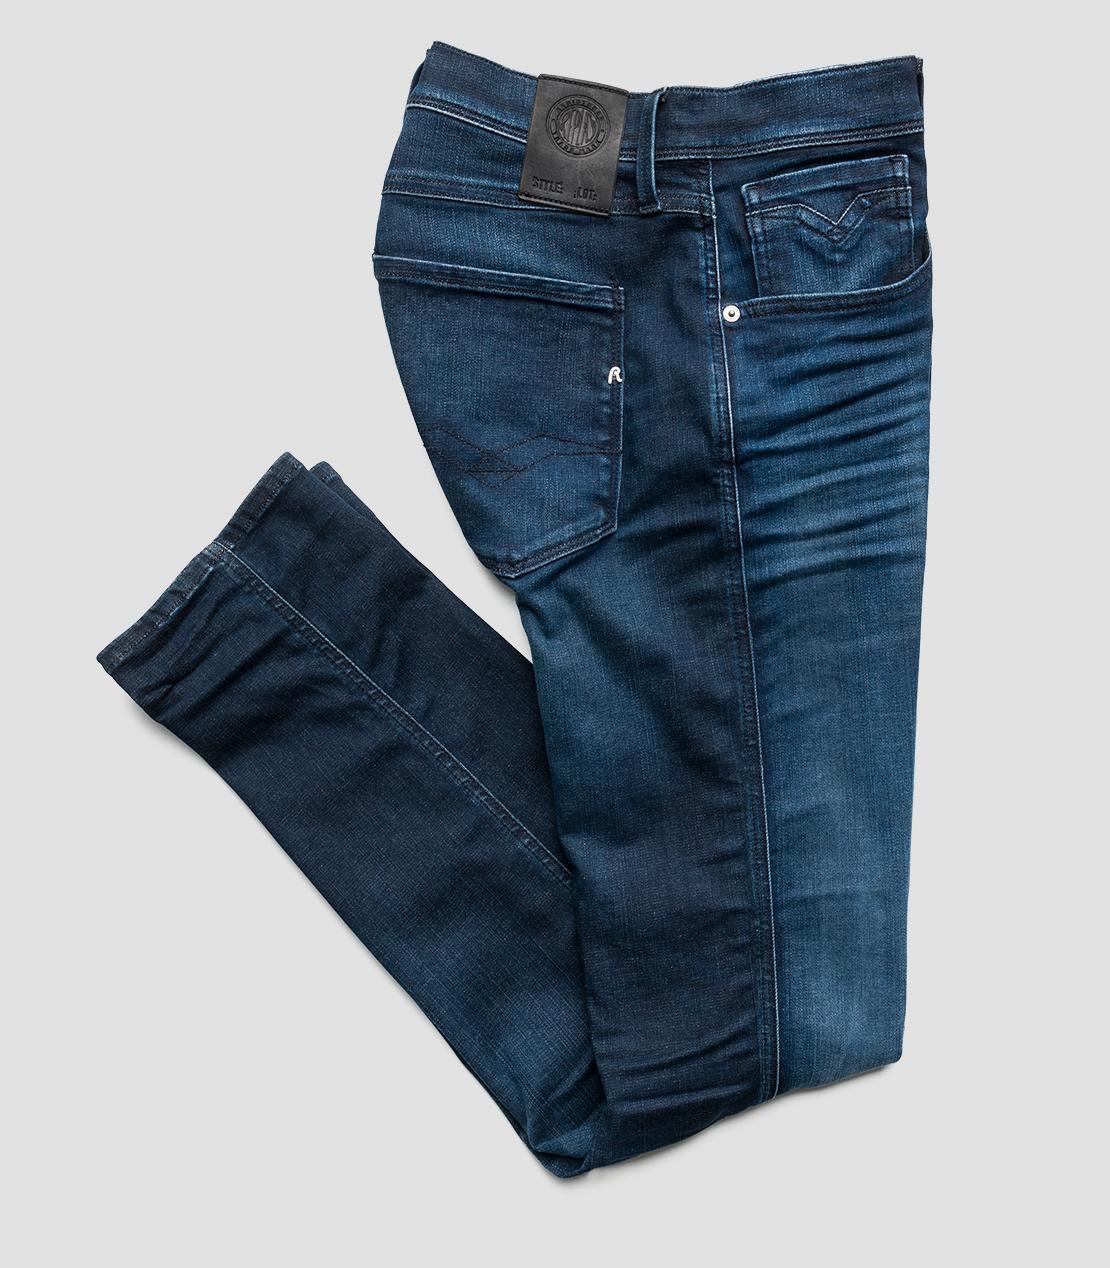 Hyperflex Clouds Dark Wash Jeans